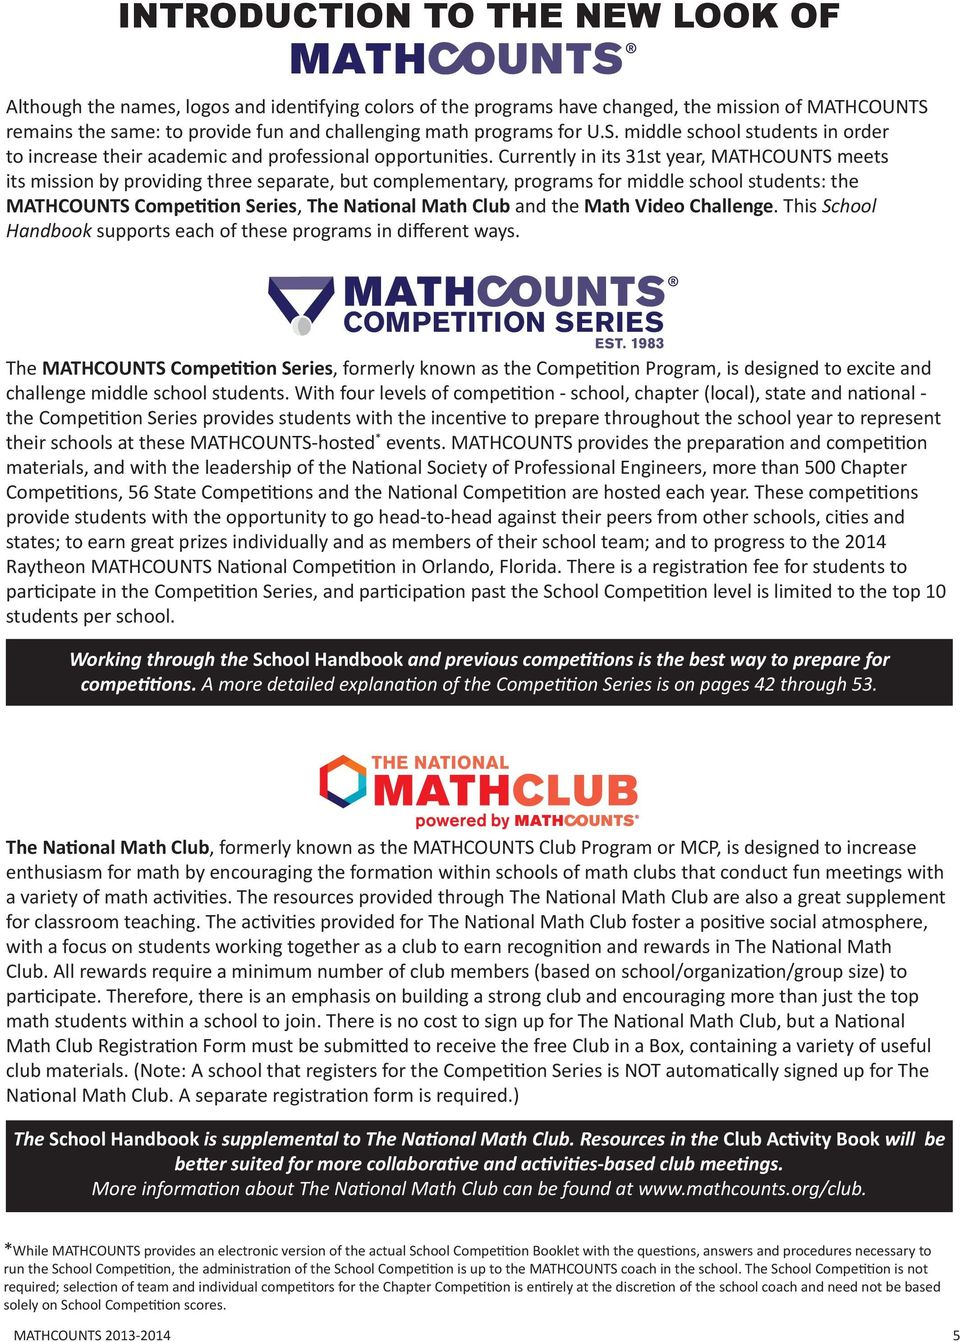 School handbook contains 300 creative math problems that meet nctm currently in its 31st year mathcounts meets its mission by providing three separate but fandeluxe Choice Image